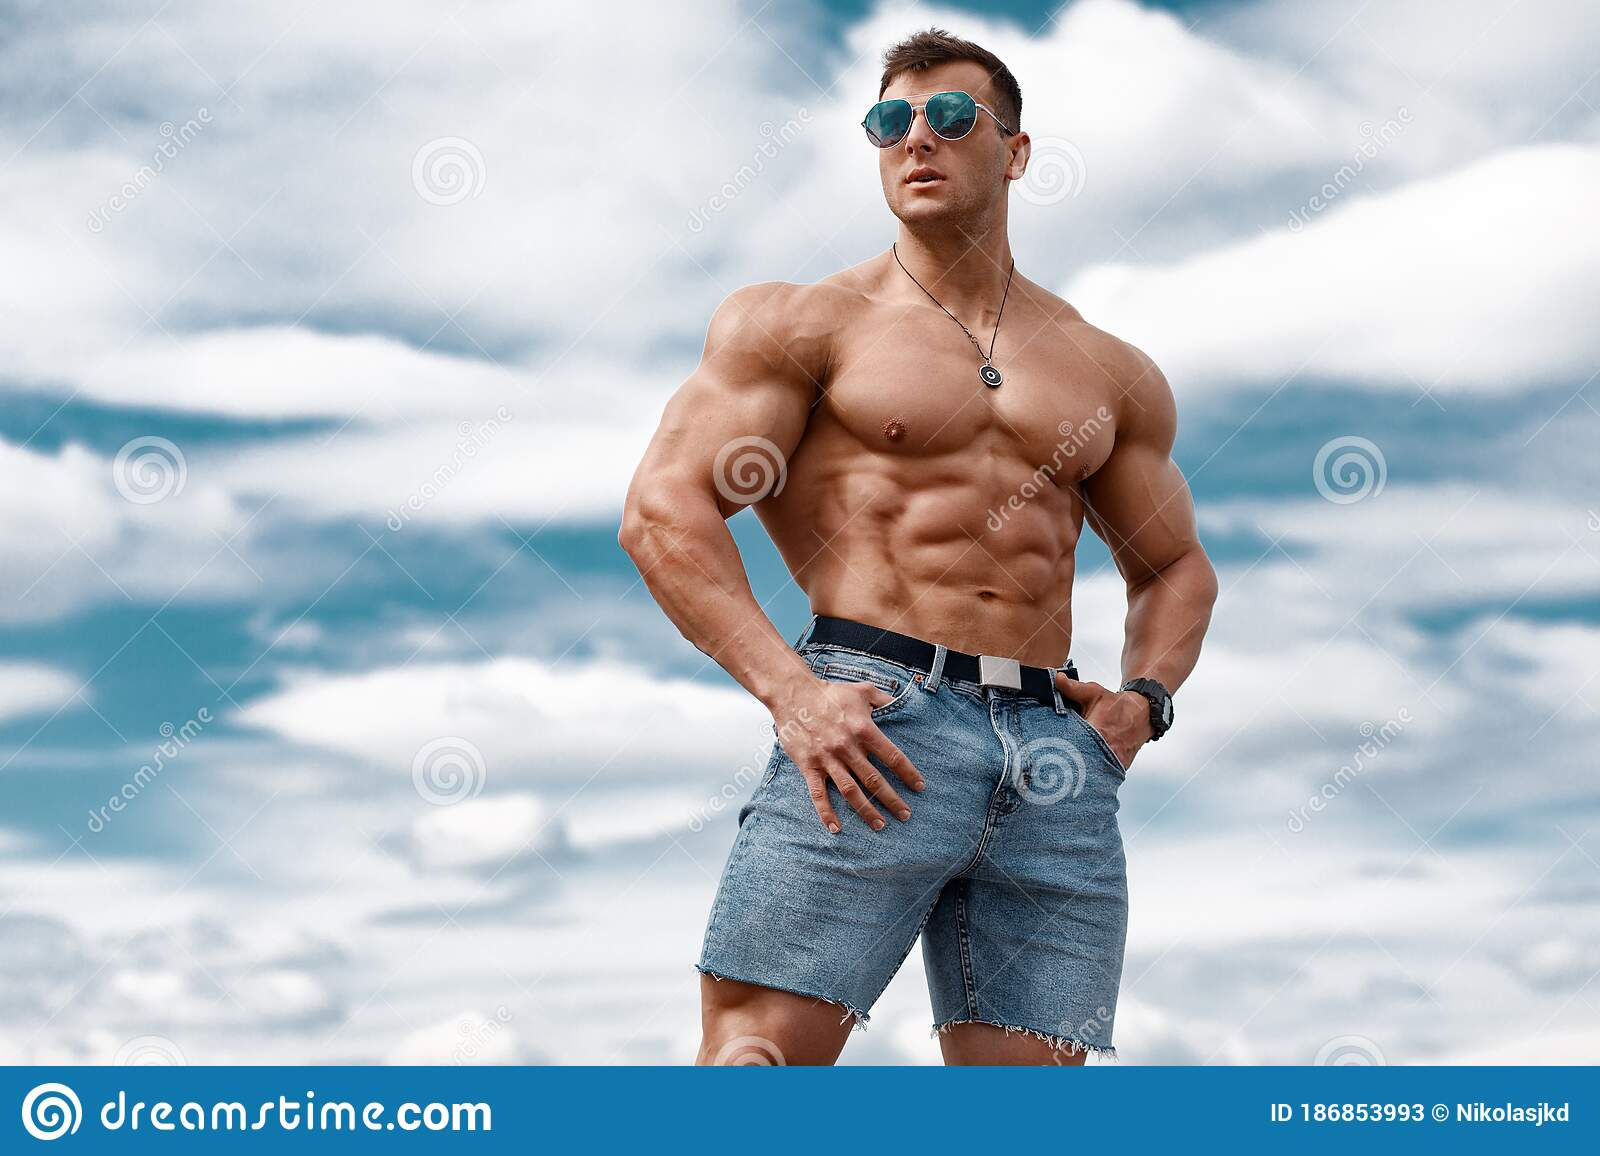 Portrait Muscular Strong Athletic Man Naked Torso Pumping